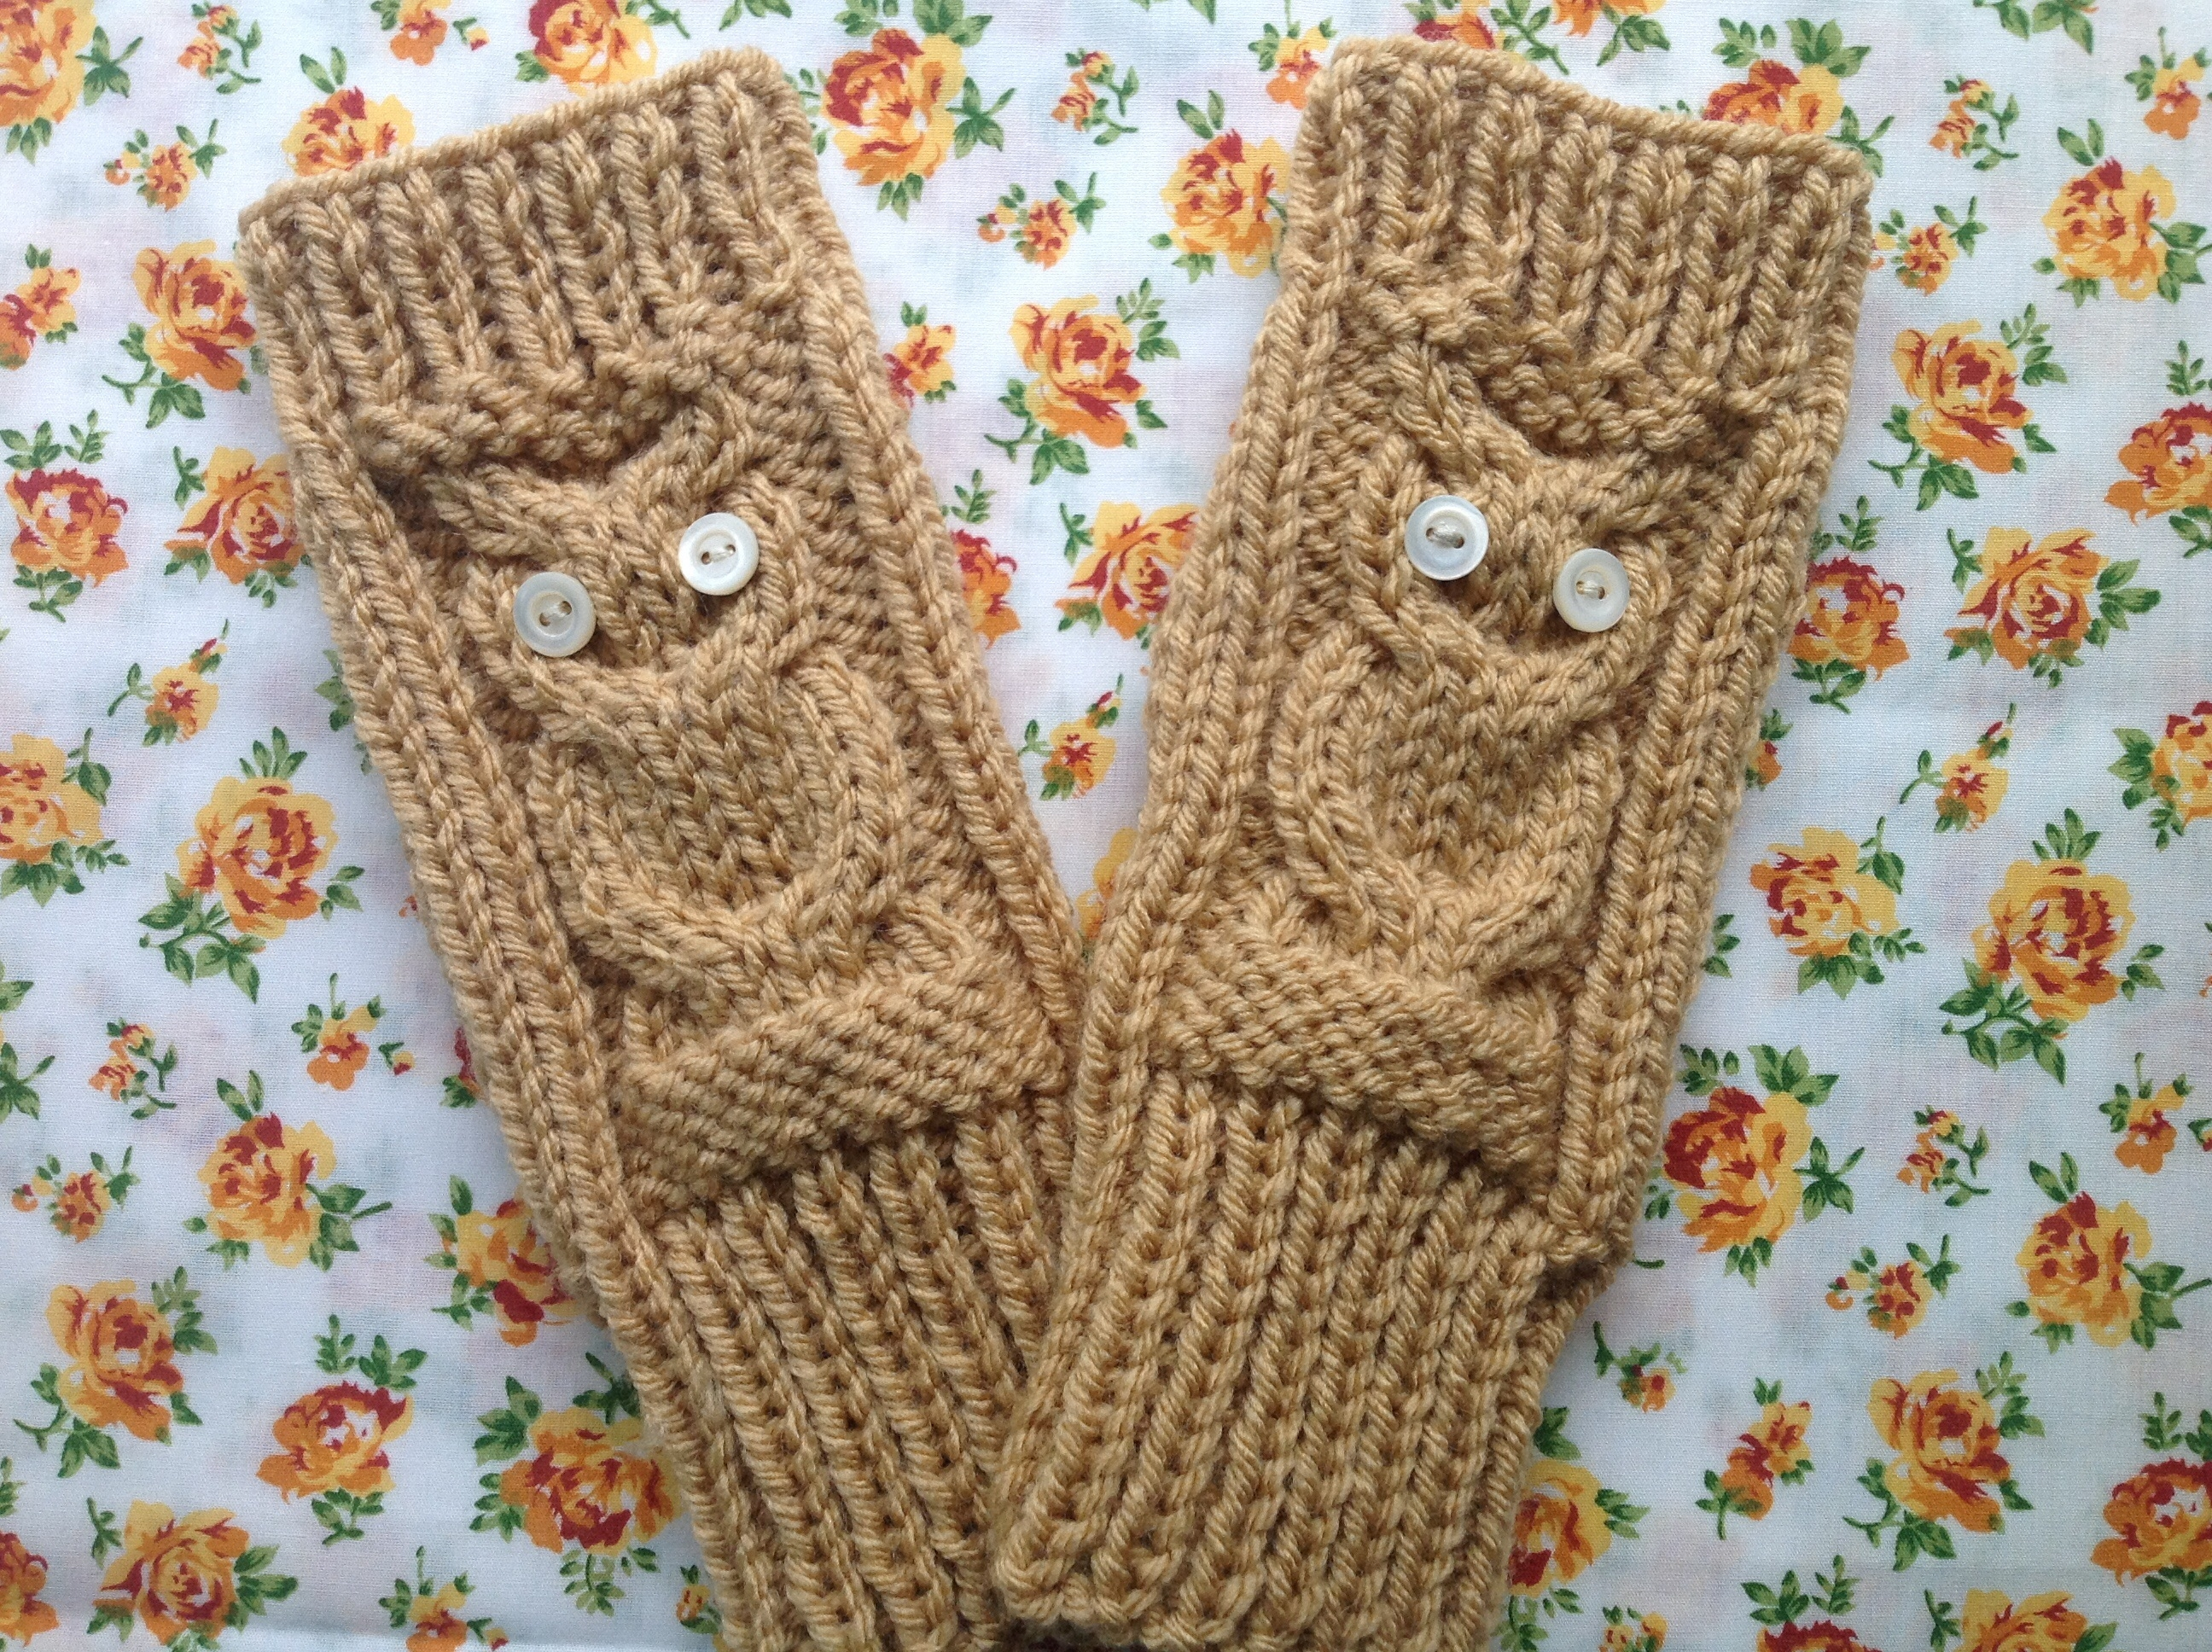 Owl fingerless gloves - knitting pattern